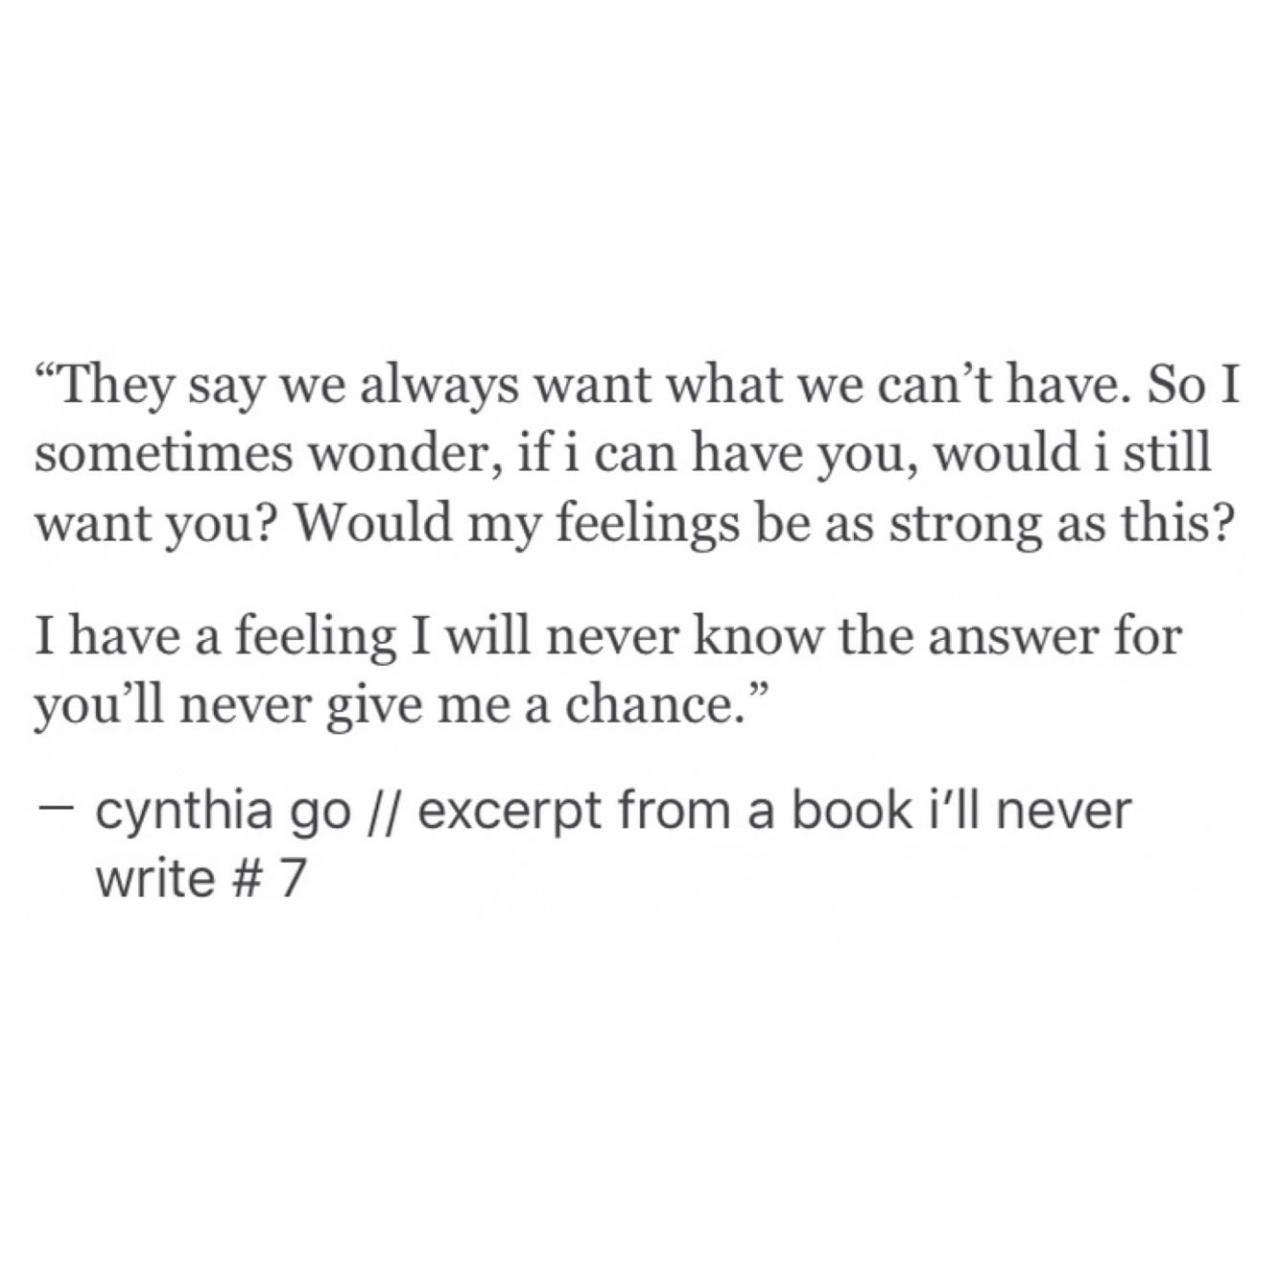 Unrequited Love Quotes Excerpt From A Book Ill Never Write Cynthia Go